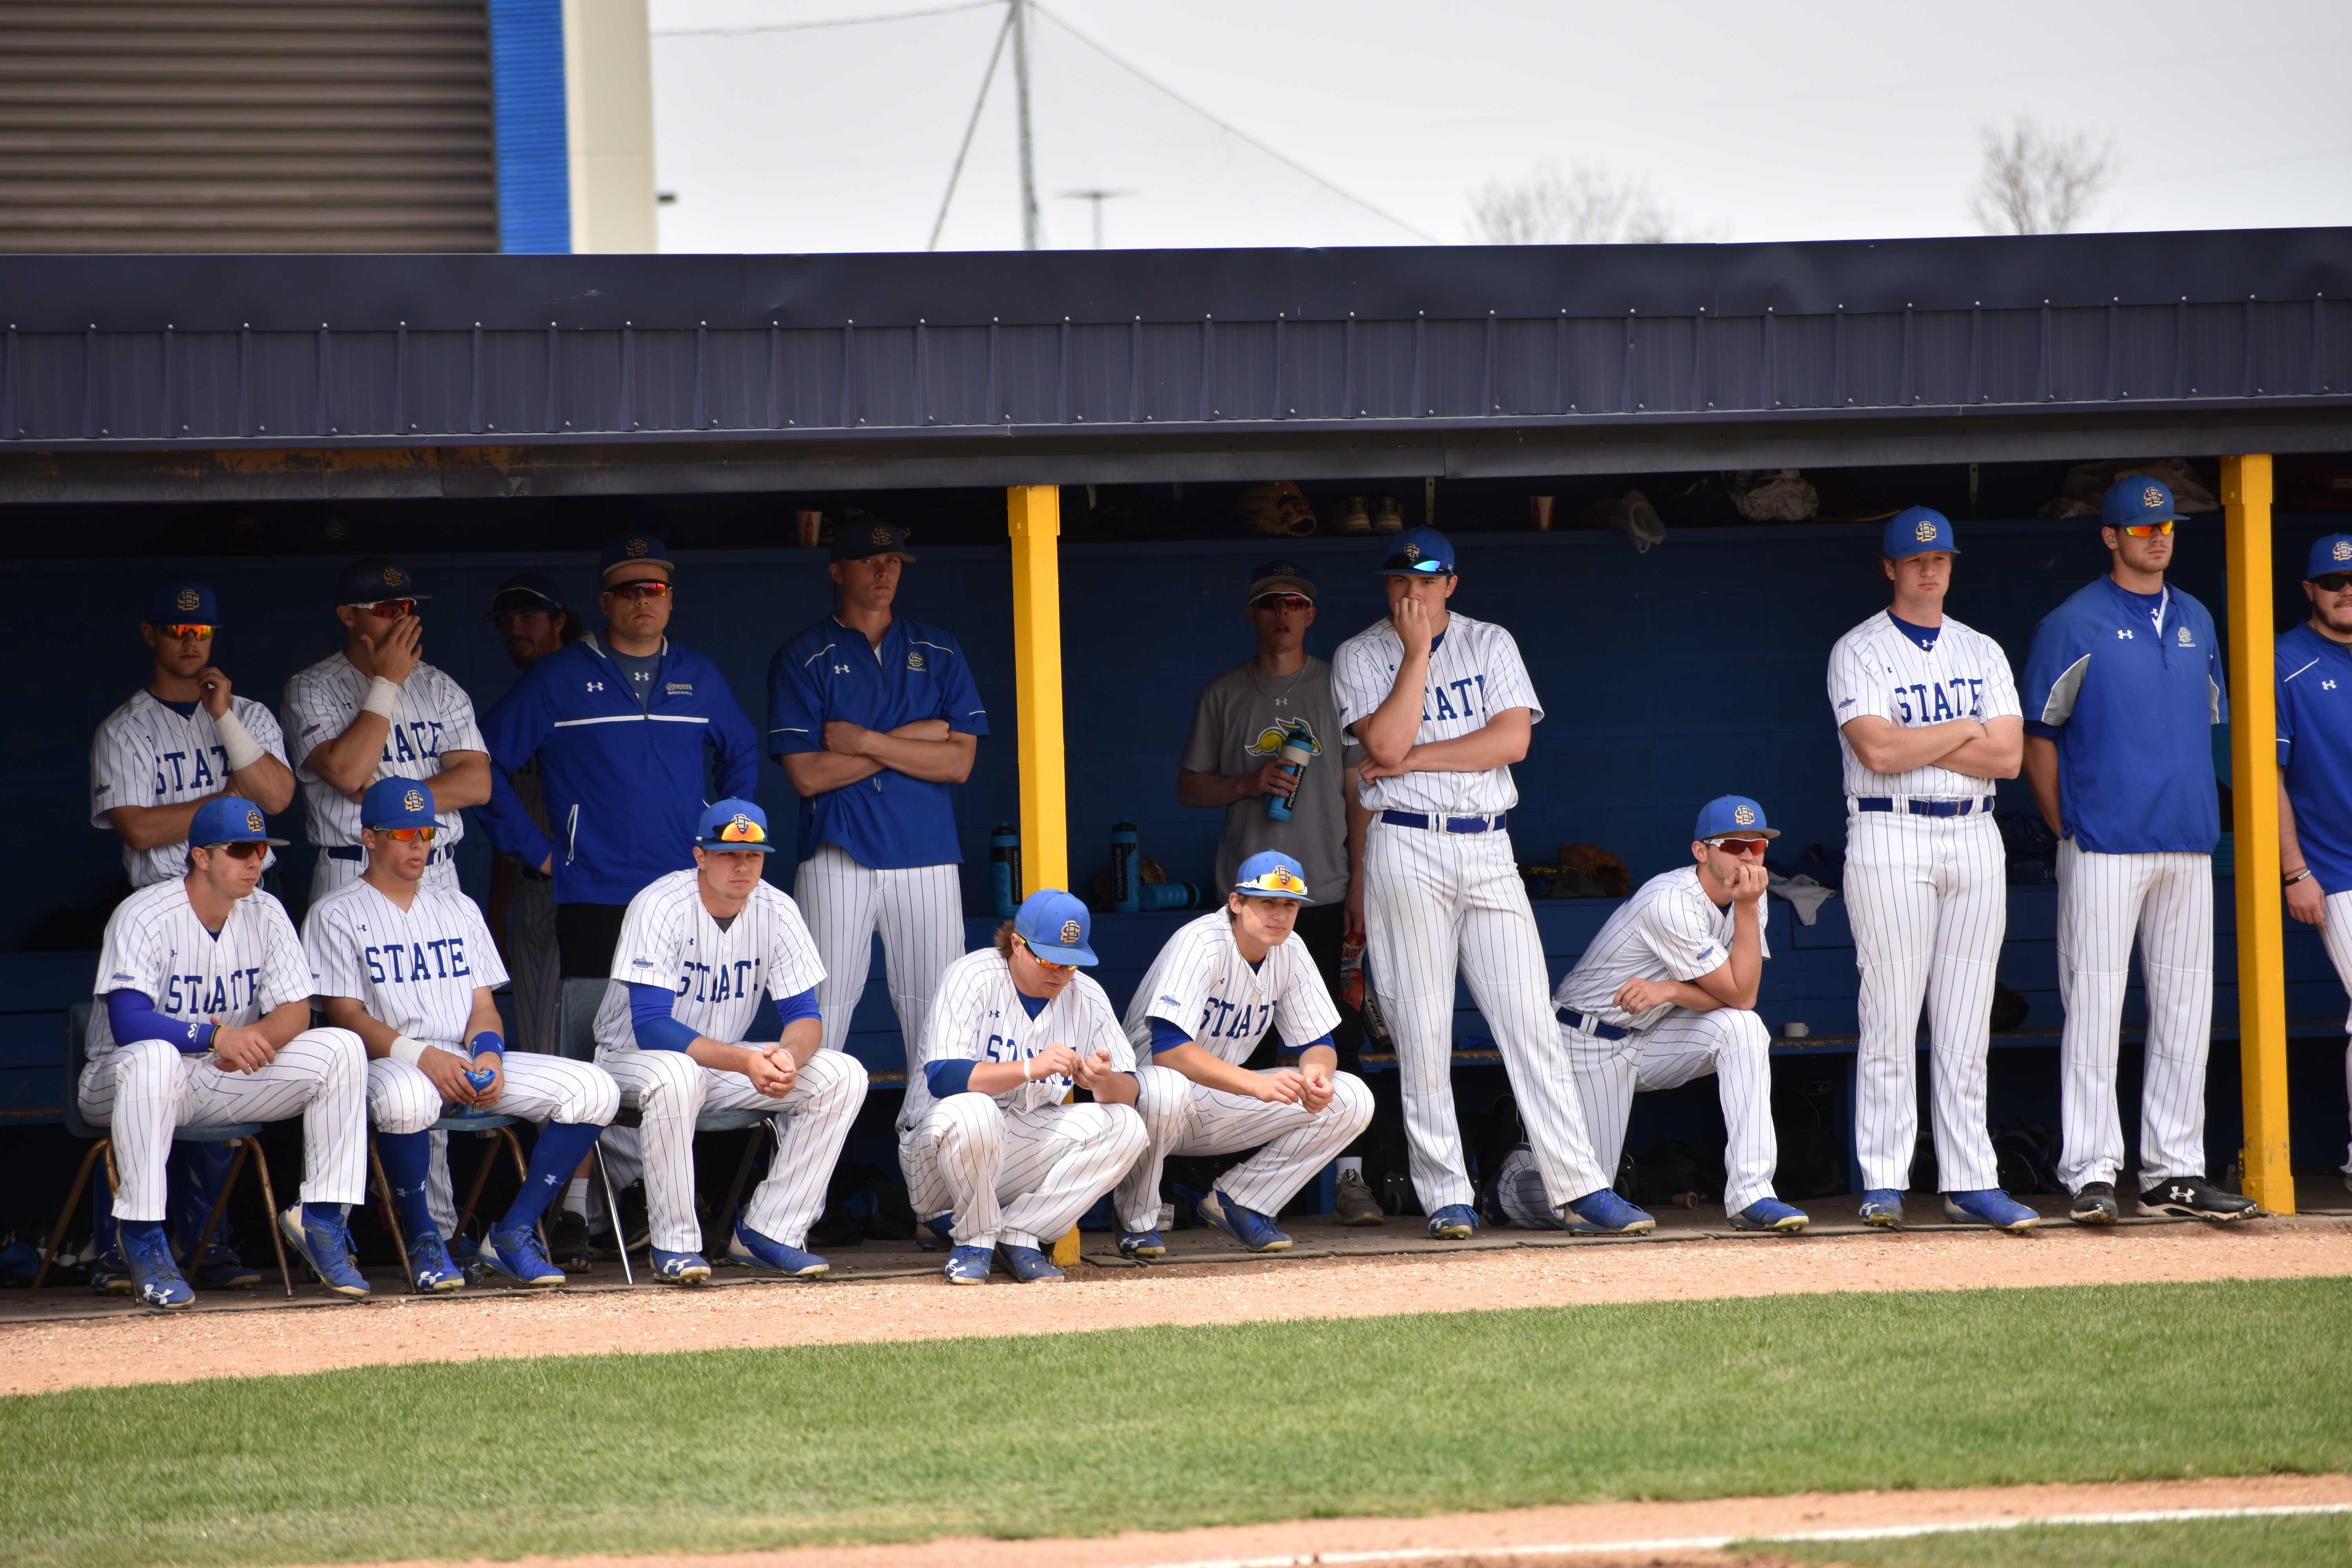 FILE PHOTO SDSU hosts Dakota Wesleyan at 3 p.m. April 4. The Jacks are 2-17 so far this season and opened Summit League play March 16 to 17 against Oral Roberts and lost all three games in the series.